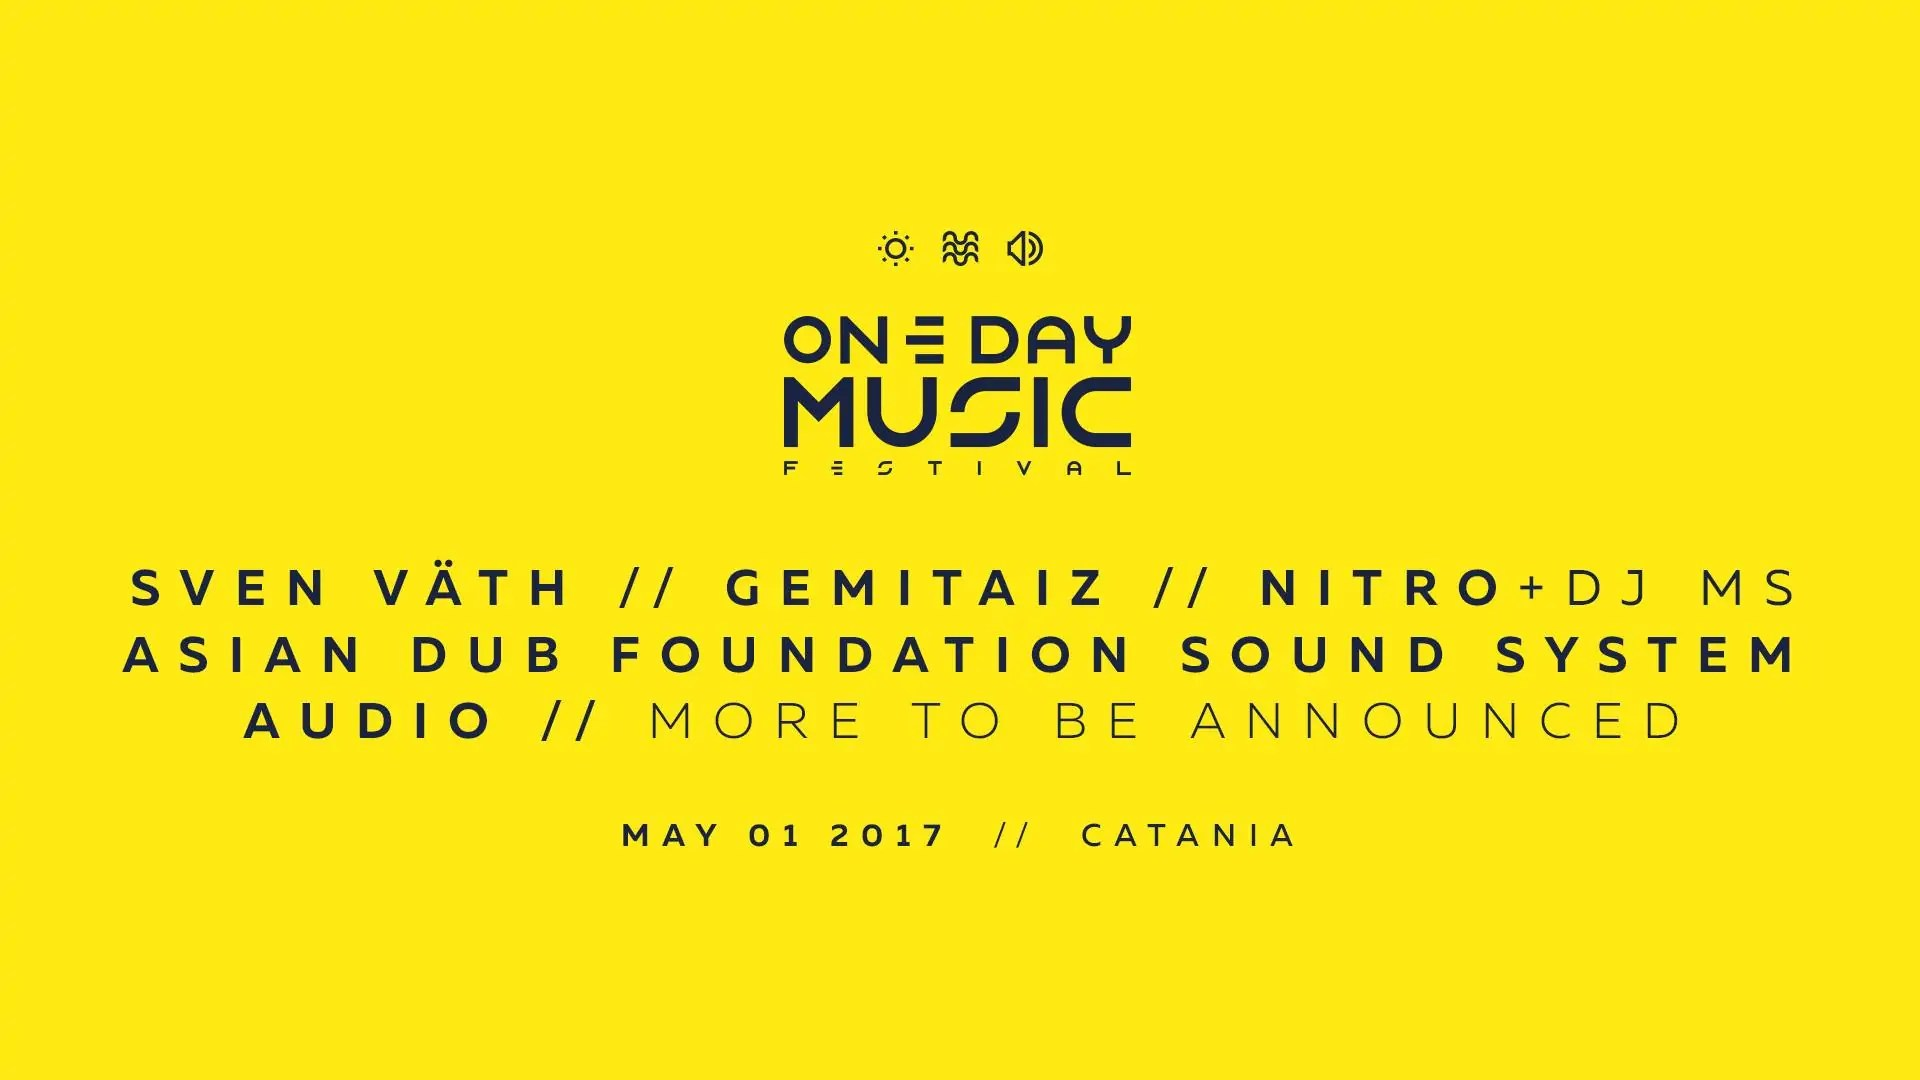 One Day Music Festival 01 05 2017 Catania